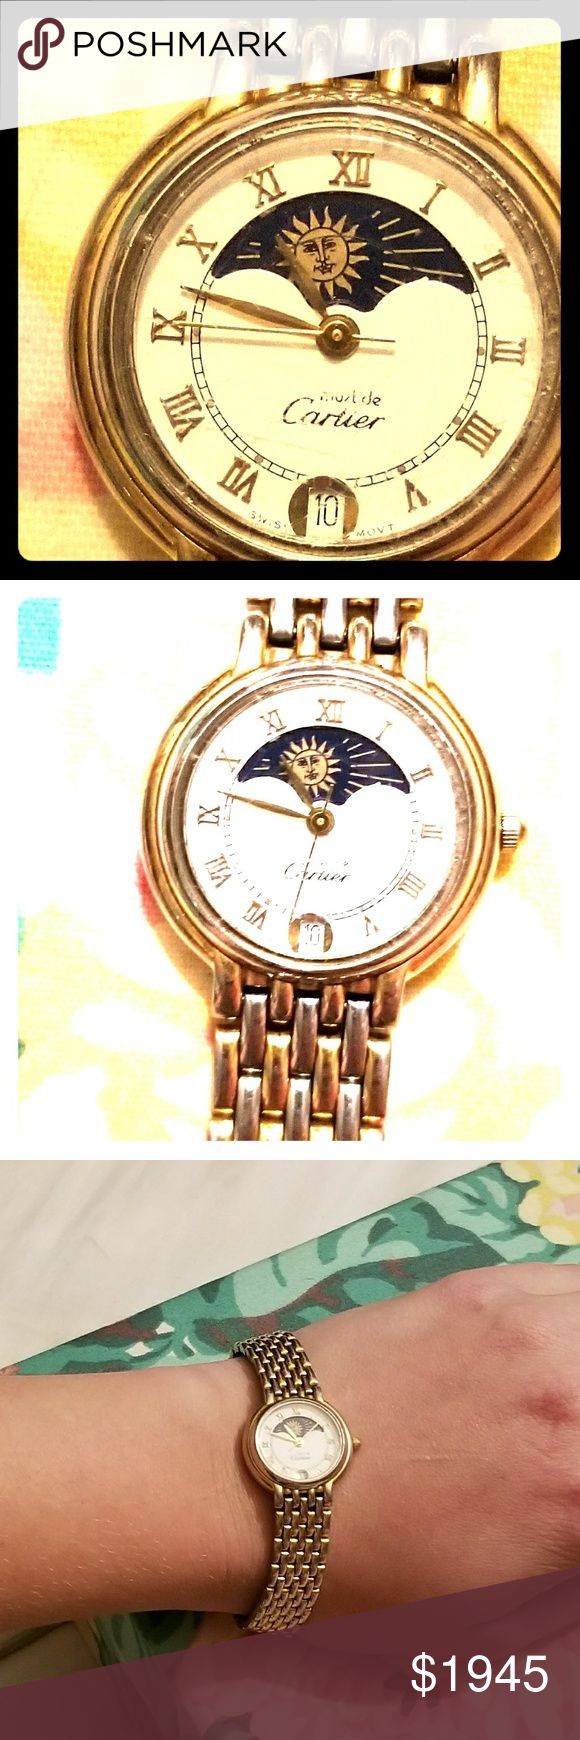 💯CARTIER-VINTAGE PANTHERE 18K MOONPHASE WATCH😍 💯AUTHENTIC CARTIER-VINTAGE PANTHERE 18K YELLOW GOLD & STAINLESS STEEL, SANTOS GALBEE  MOONPHASE, LADIES WATCH😍🔥EXCELLENT WORKING CONDITION. WHITE COLORED DIAL WITH GOLD ROMAN NUMERALS AND MOONPHASE INDICATOR. HARD TO FIND/RARE! 100% FUNCTIONAL. So beautiful!! Bundle & SAVE! (OPEN TO TRADES & OFFERS) Cartier Accessories Watches